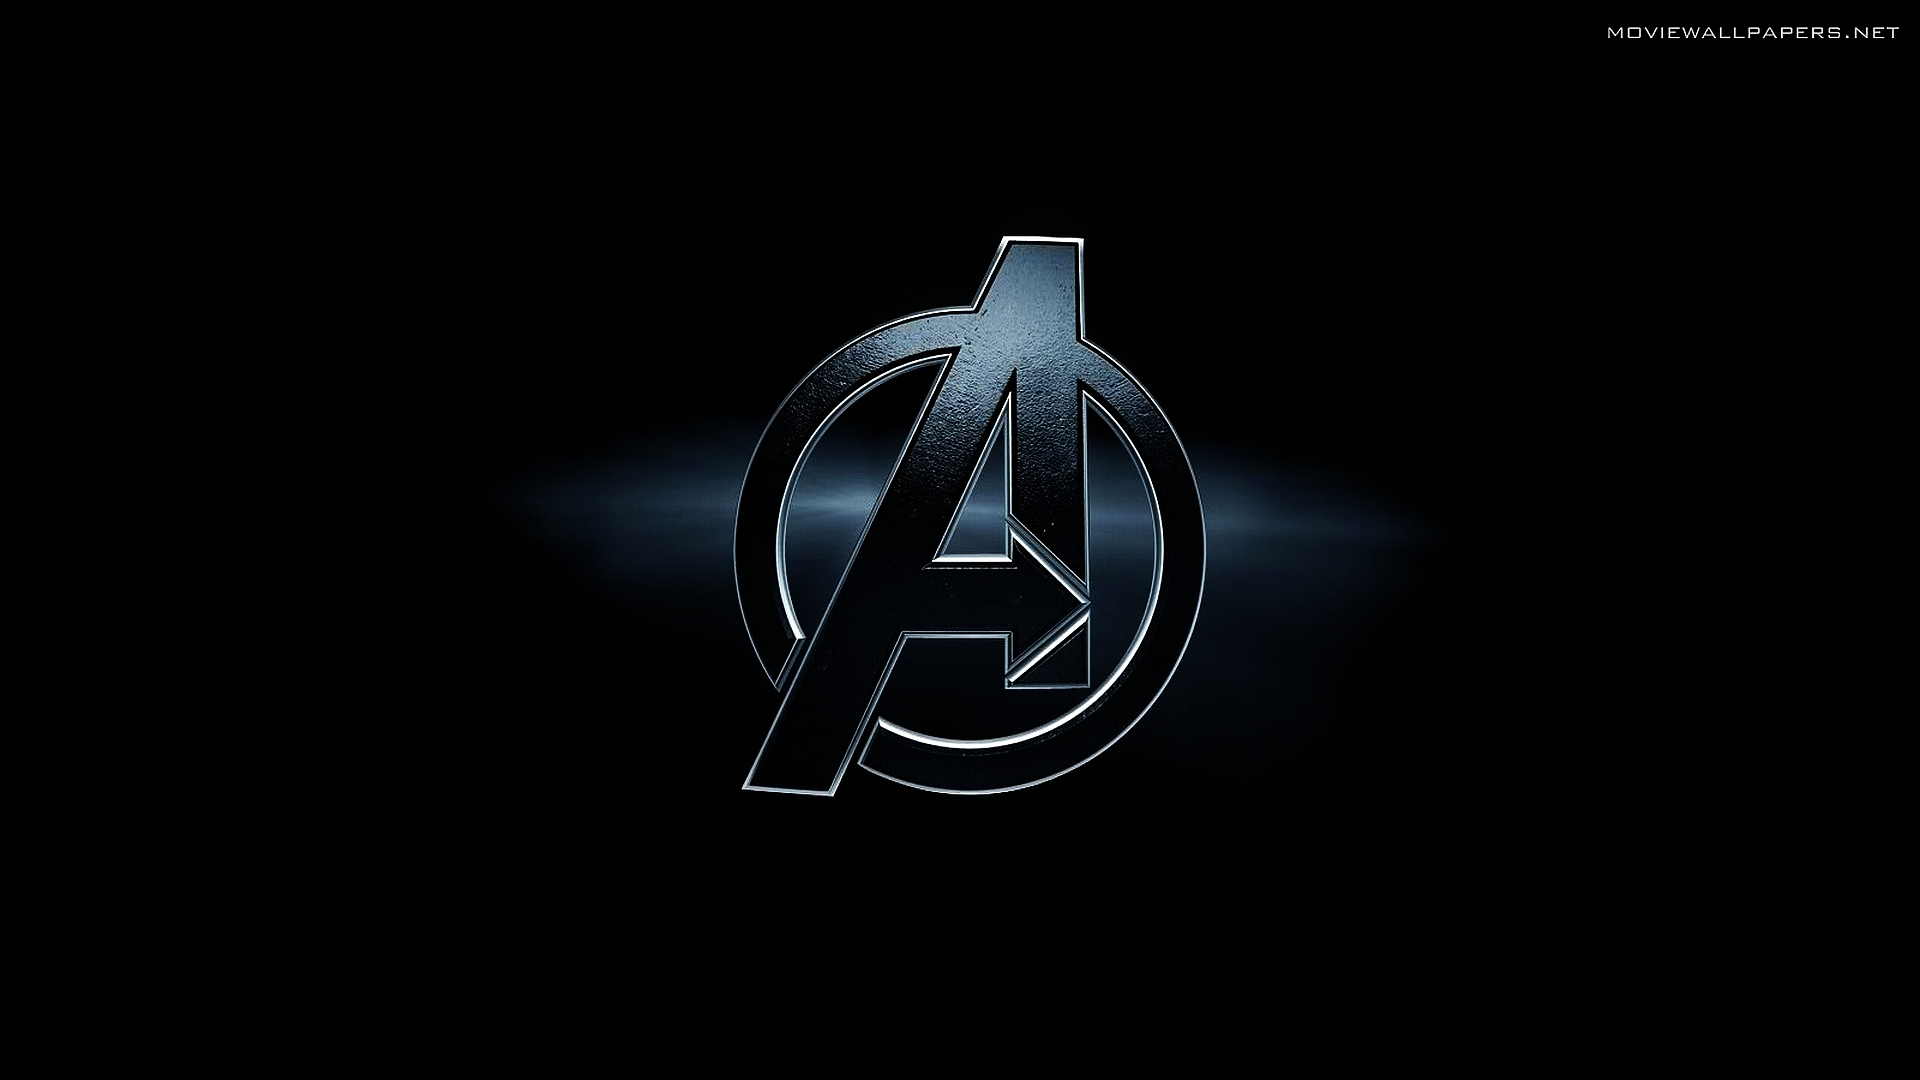 ... Coders | Wallpaper Abyss Everything The Avengers Movie Avengers 153895